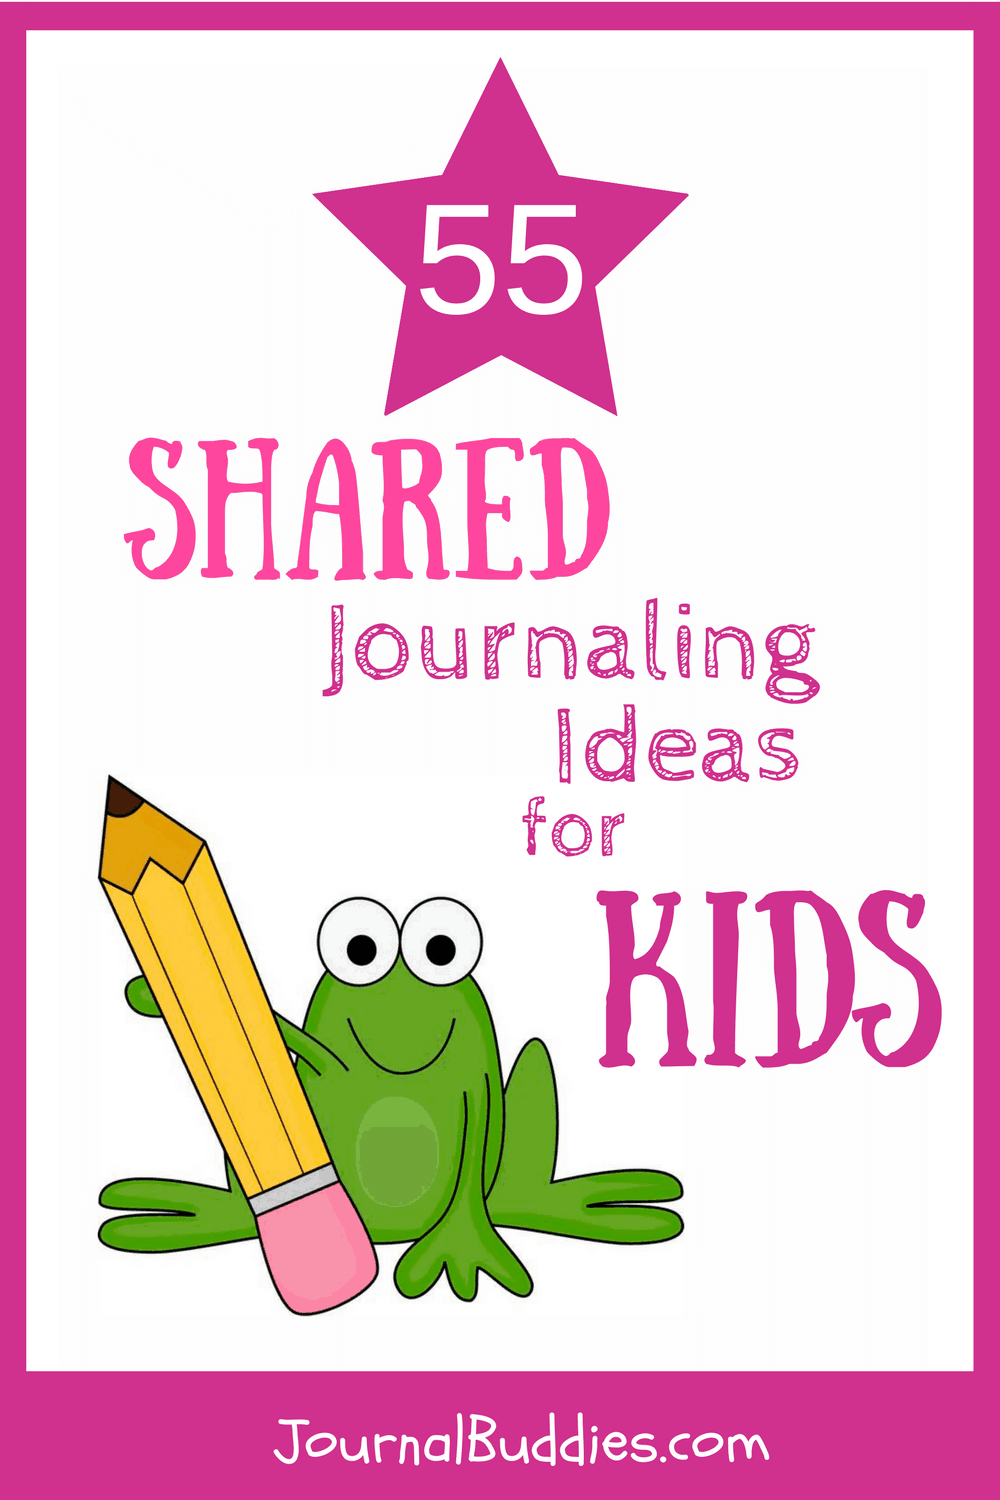 In these 55 new journal prompts, you and your child can answer questions together and discuss the similarities and differences in your responses.